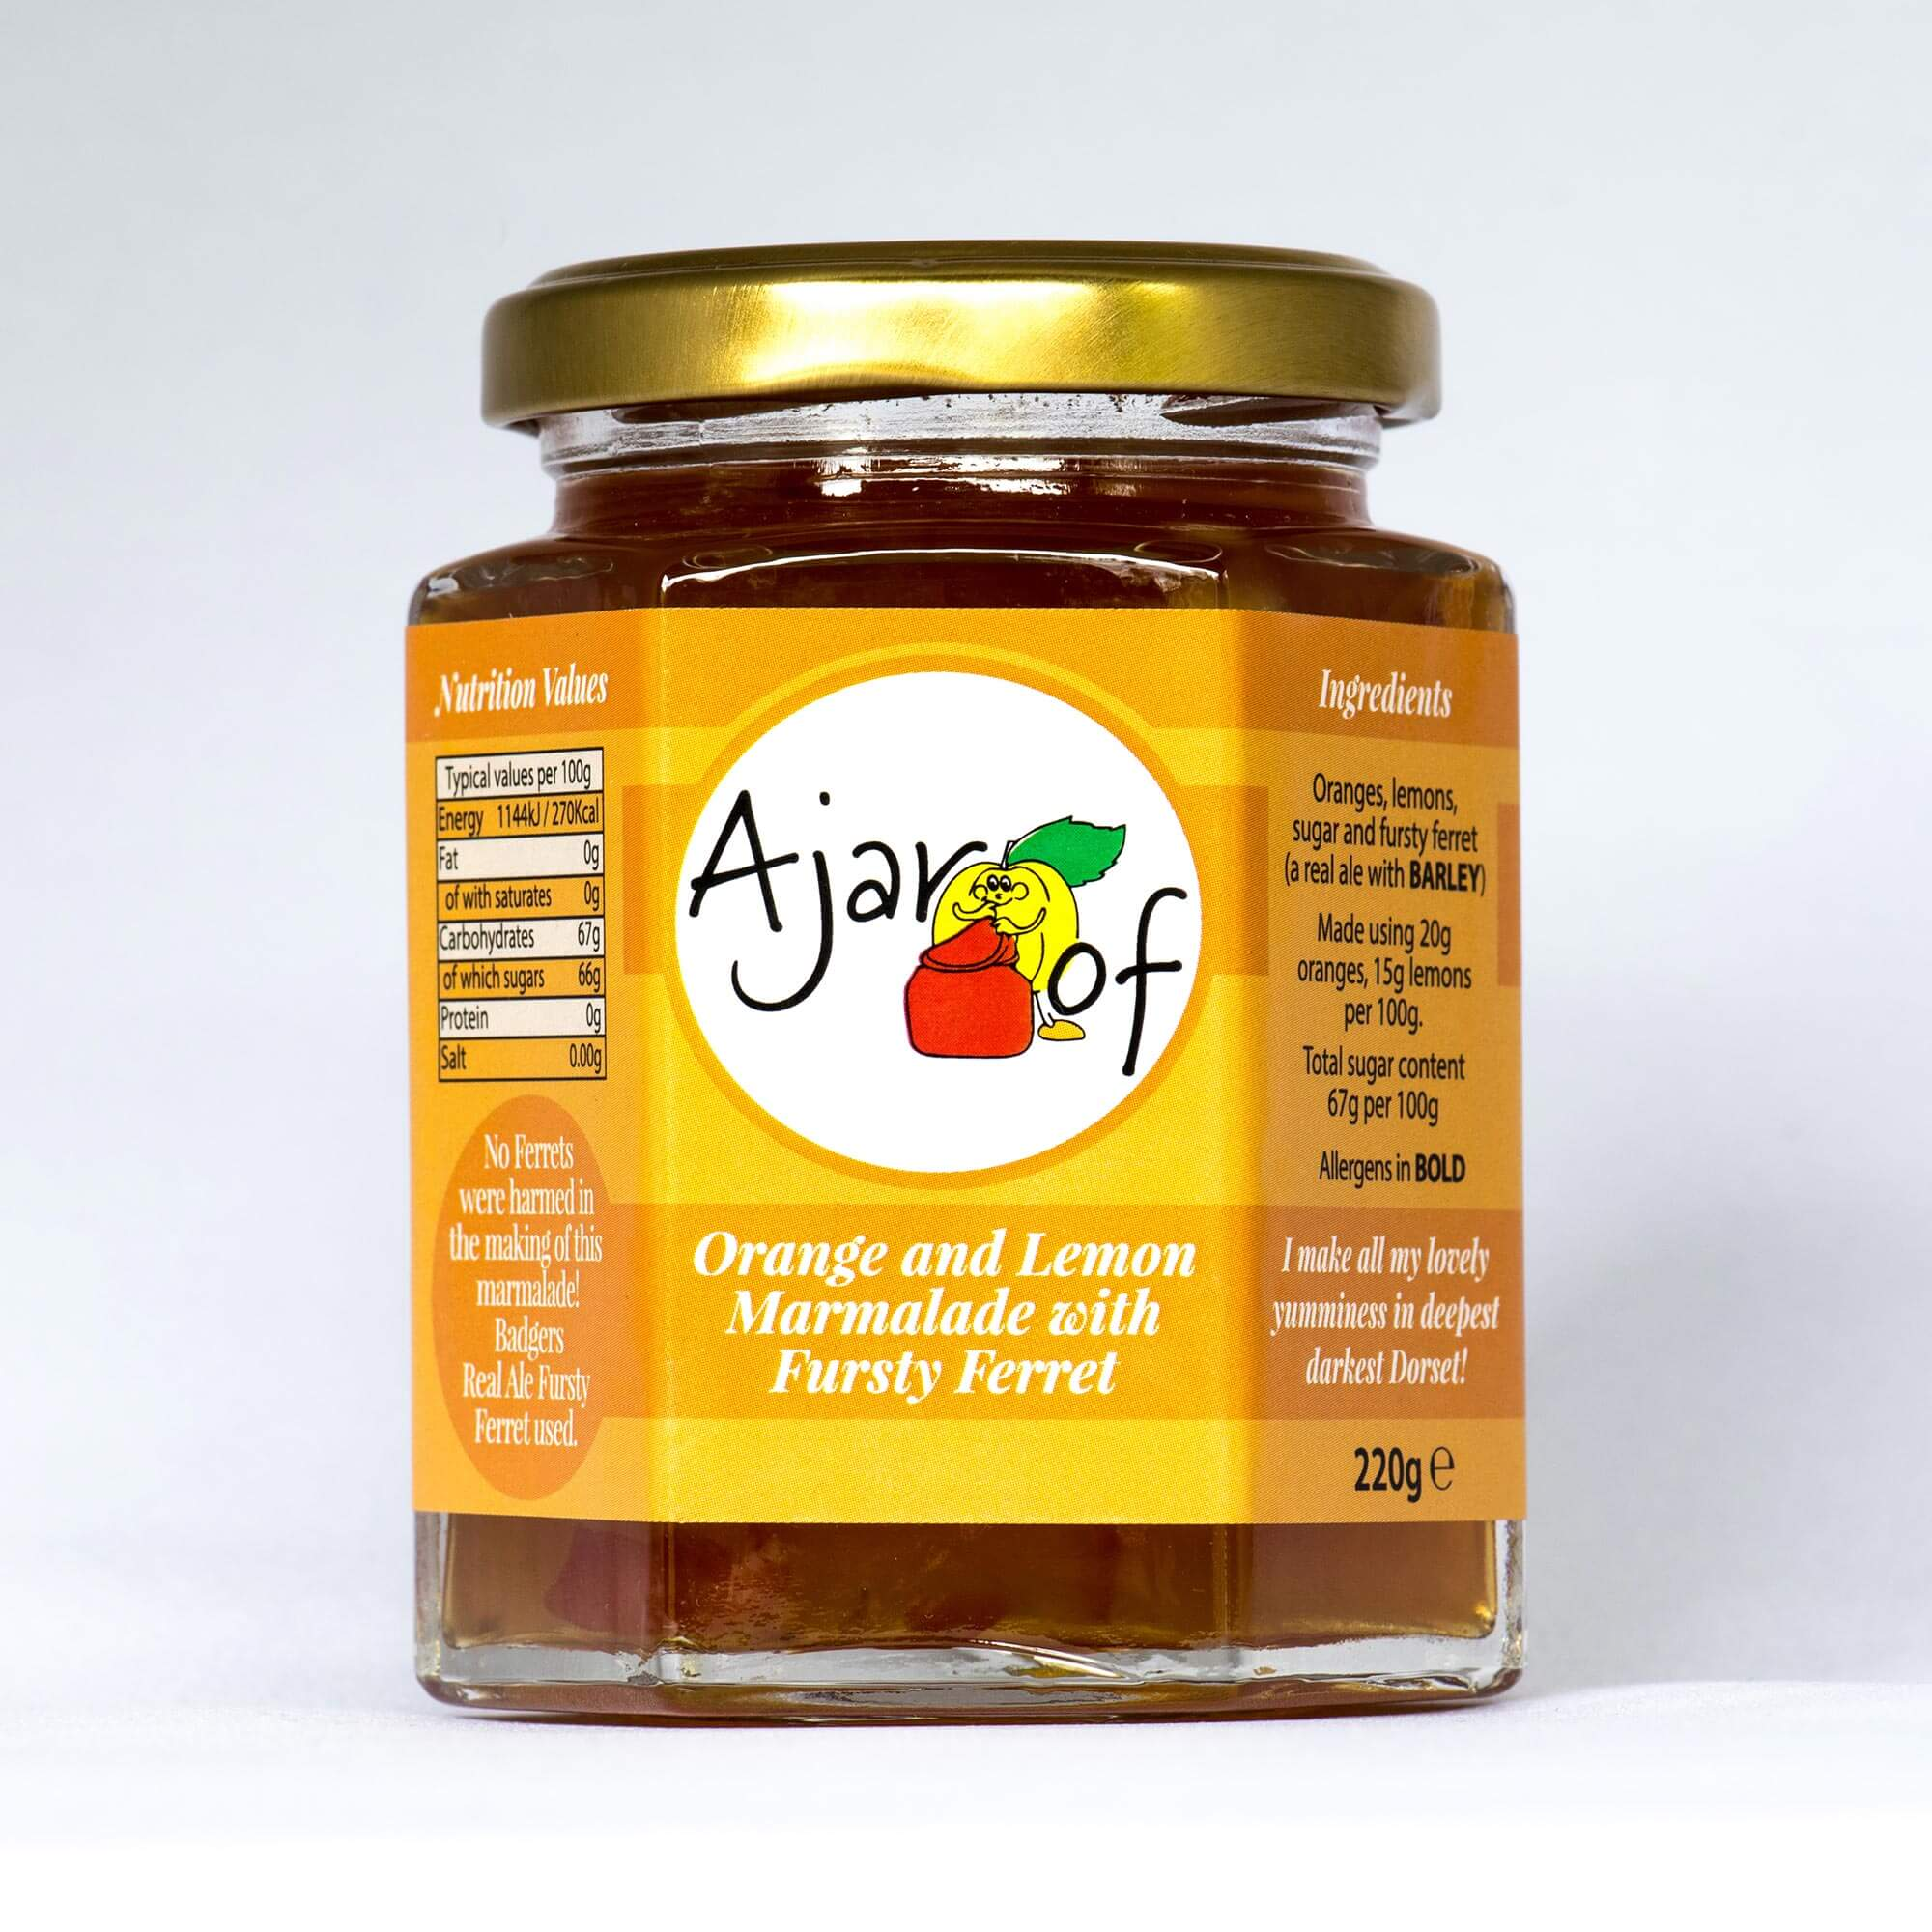 orange-and-lemon-marmalade-with-fursty-ferret